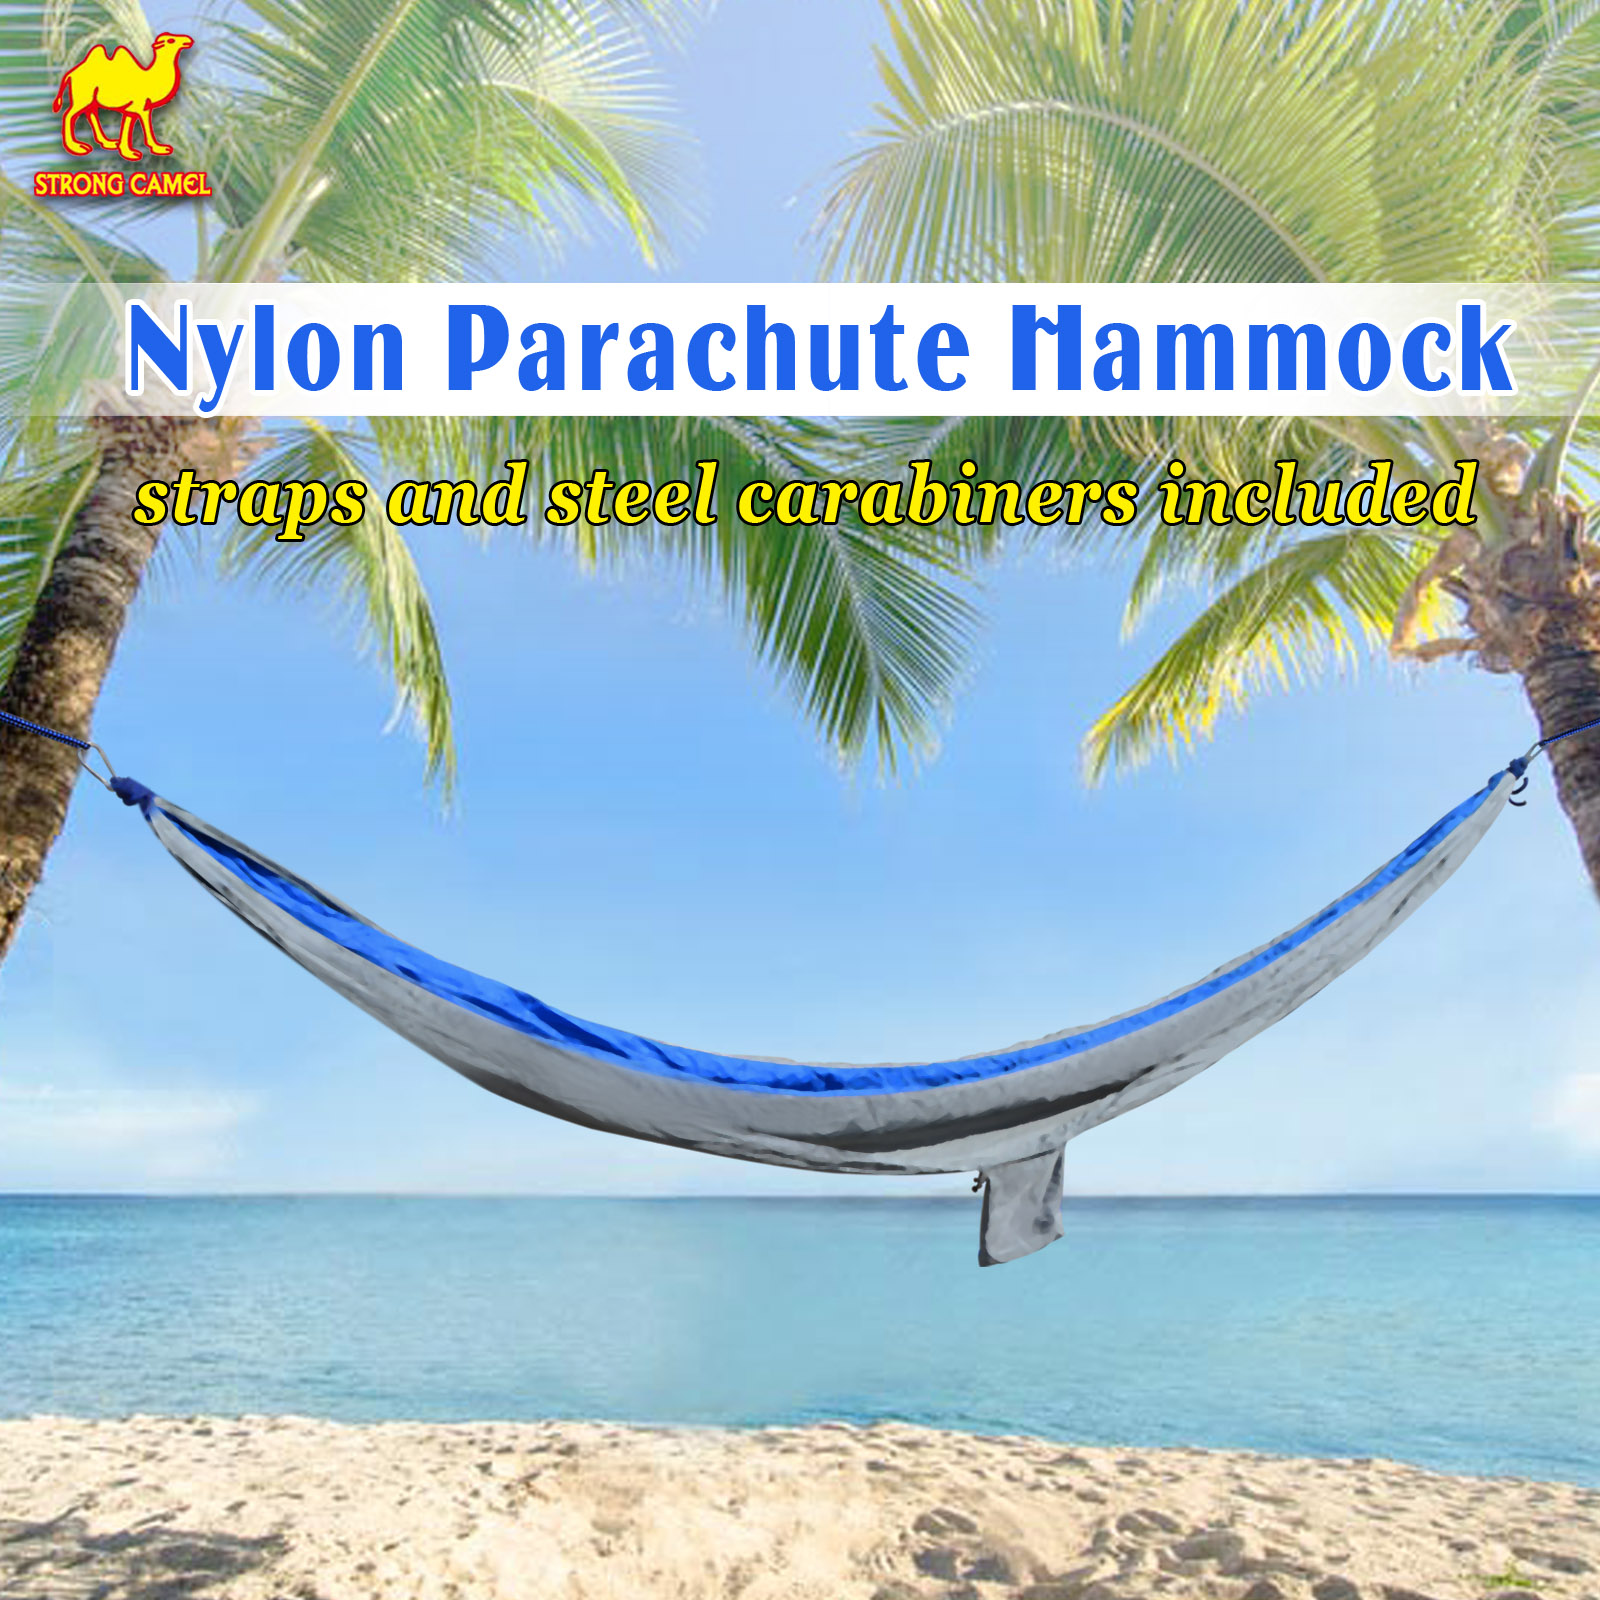 Strong Camel Portable Nylon Parachute Hammock Light Travel Camping Hiking Swing Bed-Blue